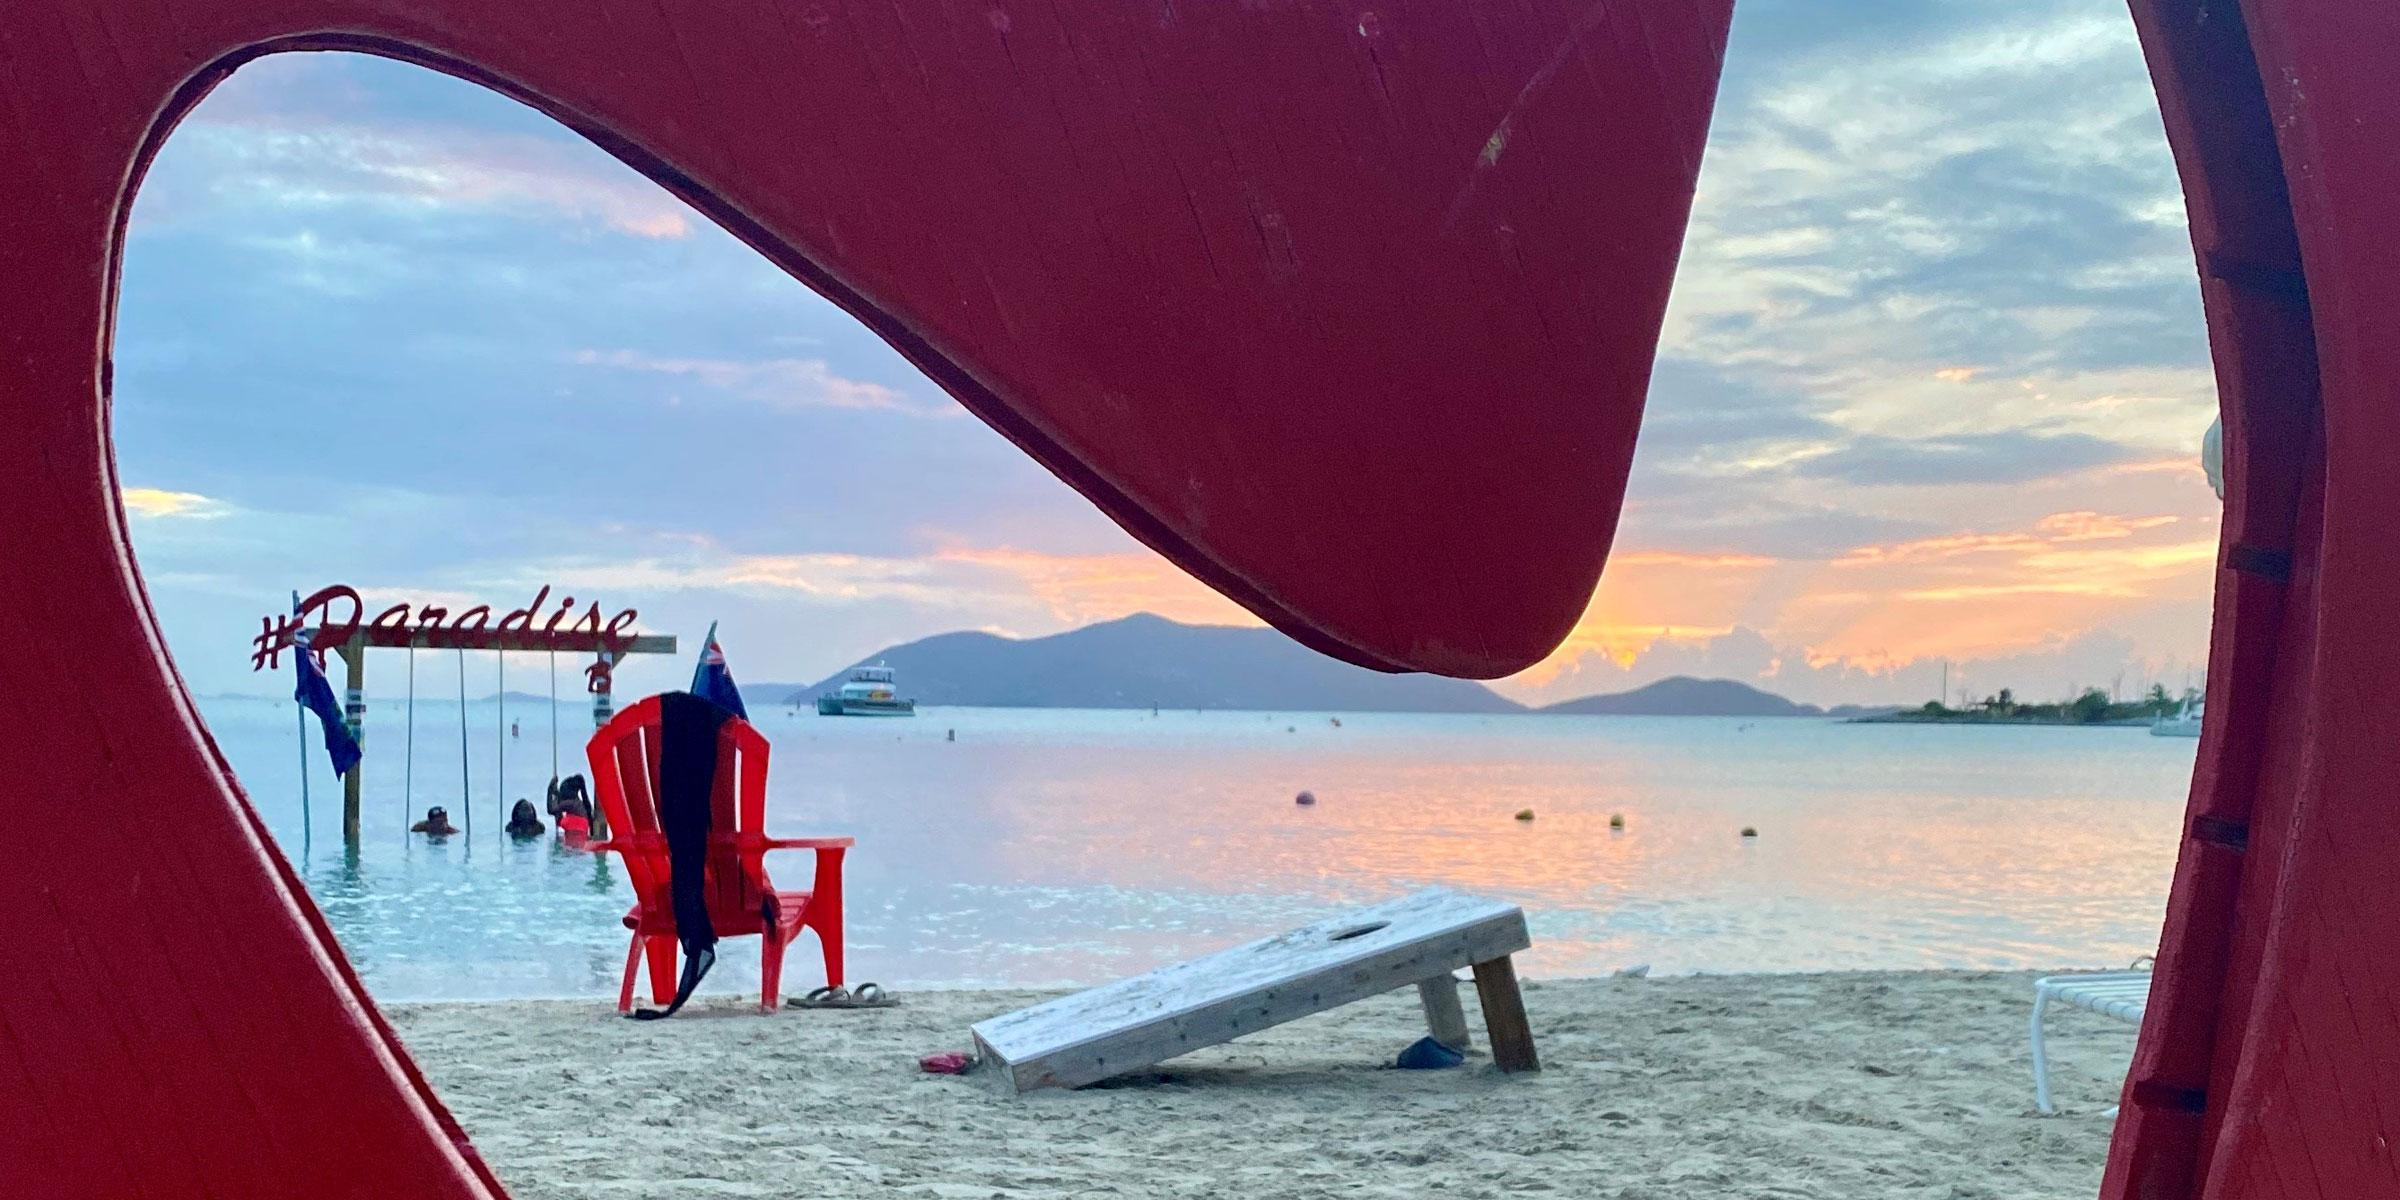 View on BVI Paradise swing at Cane Garden Bay